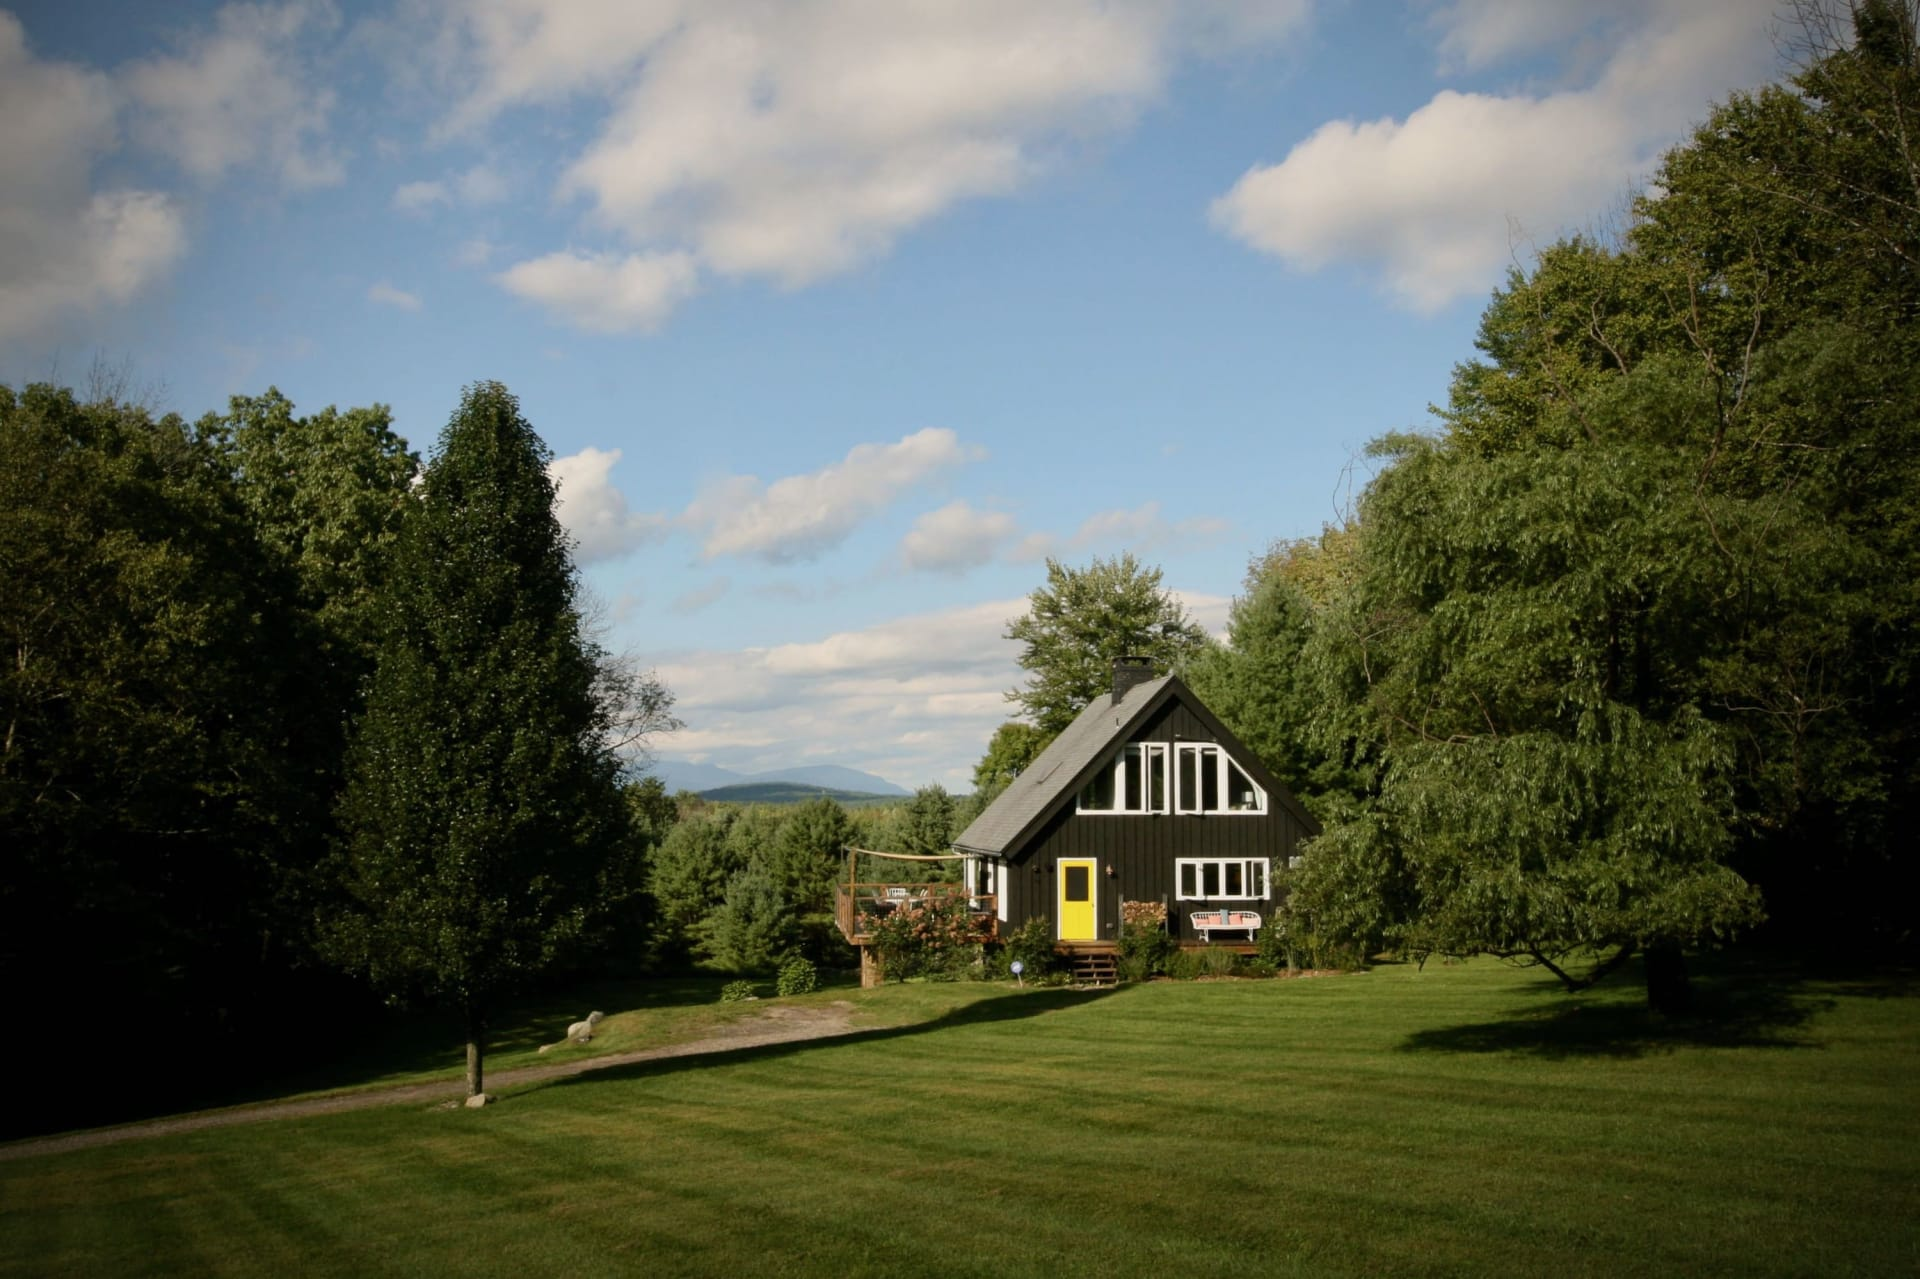 Selling an Upstate Home? Five Things to Consider